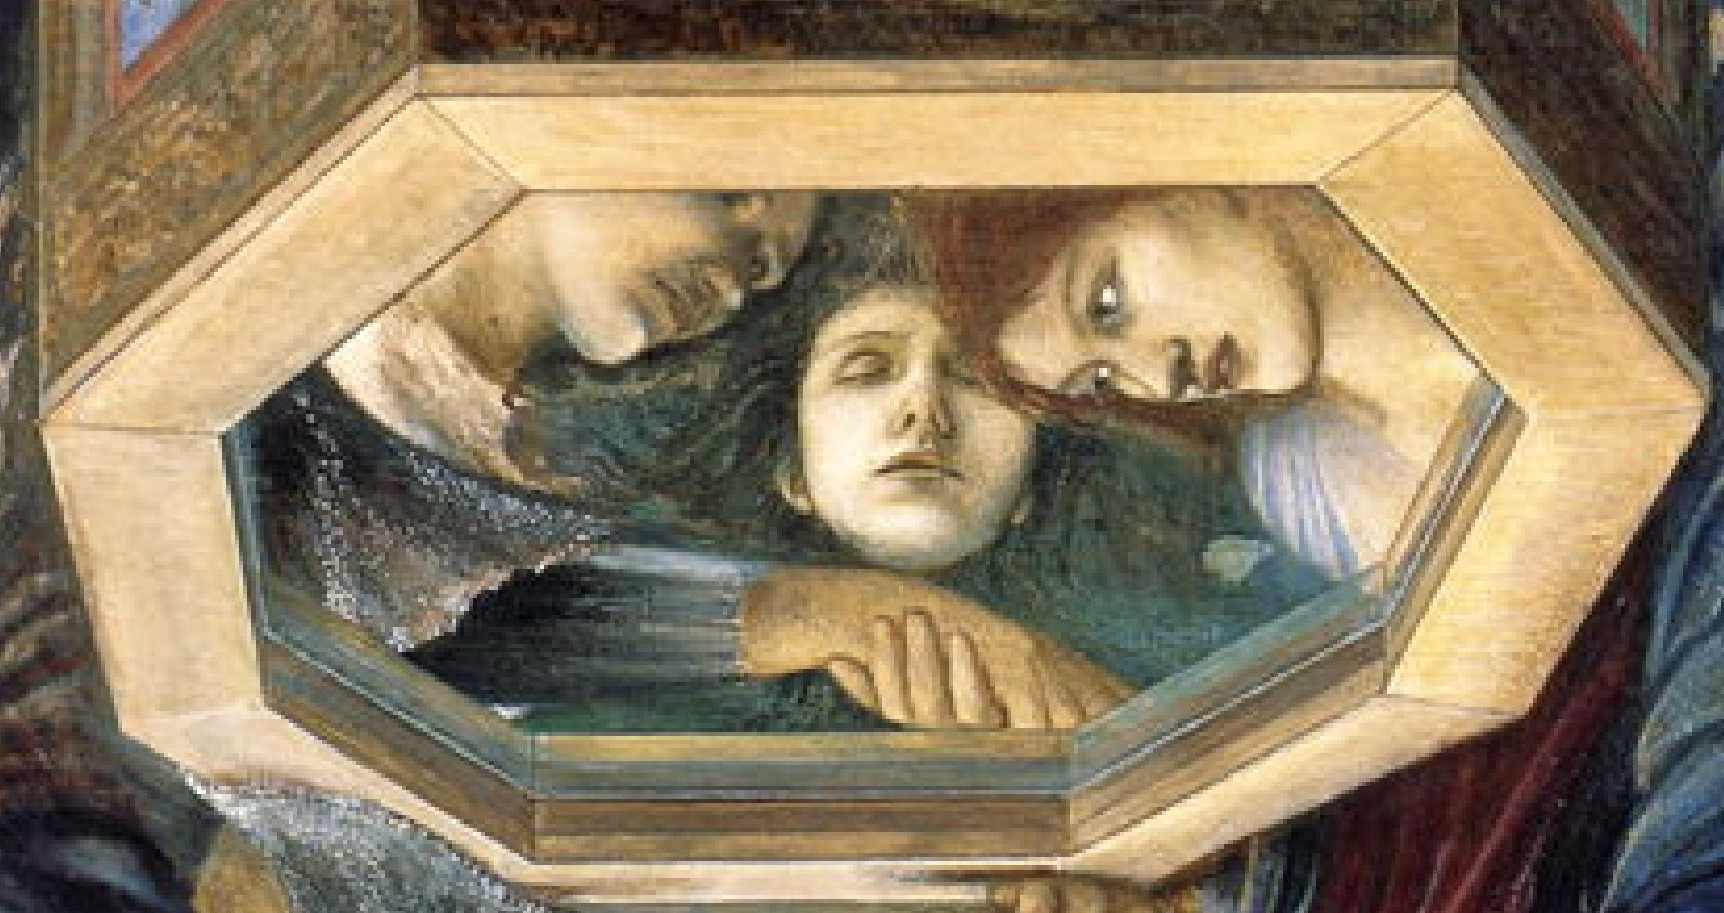 burne jones Cycle Persee 10 1887 The-Baleful-Head-Southampton City Art Gallery detail,